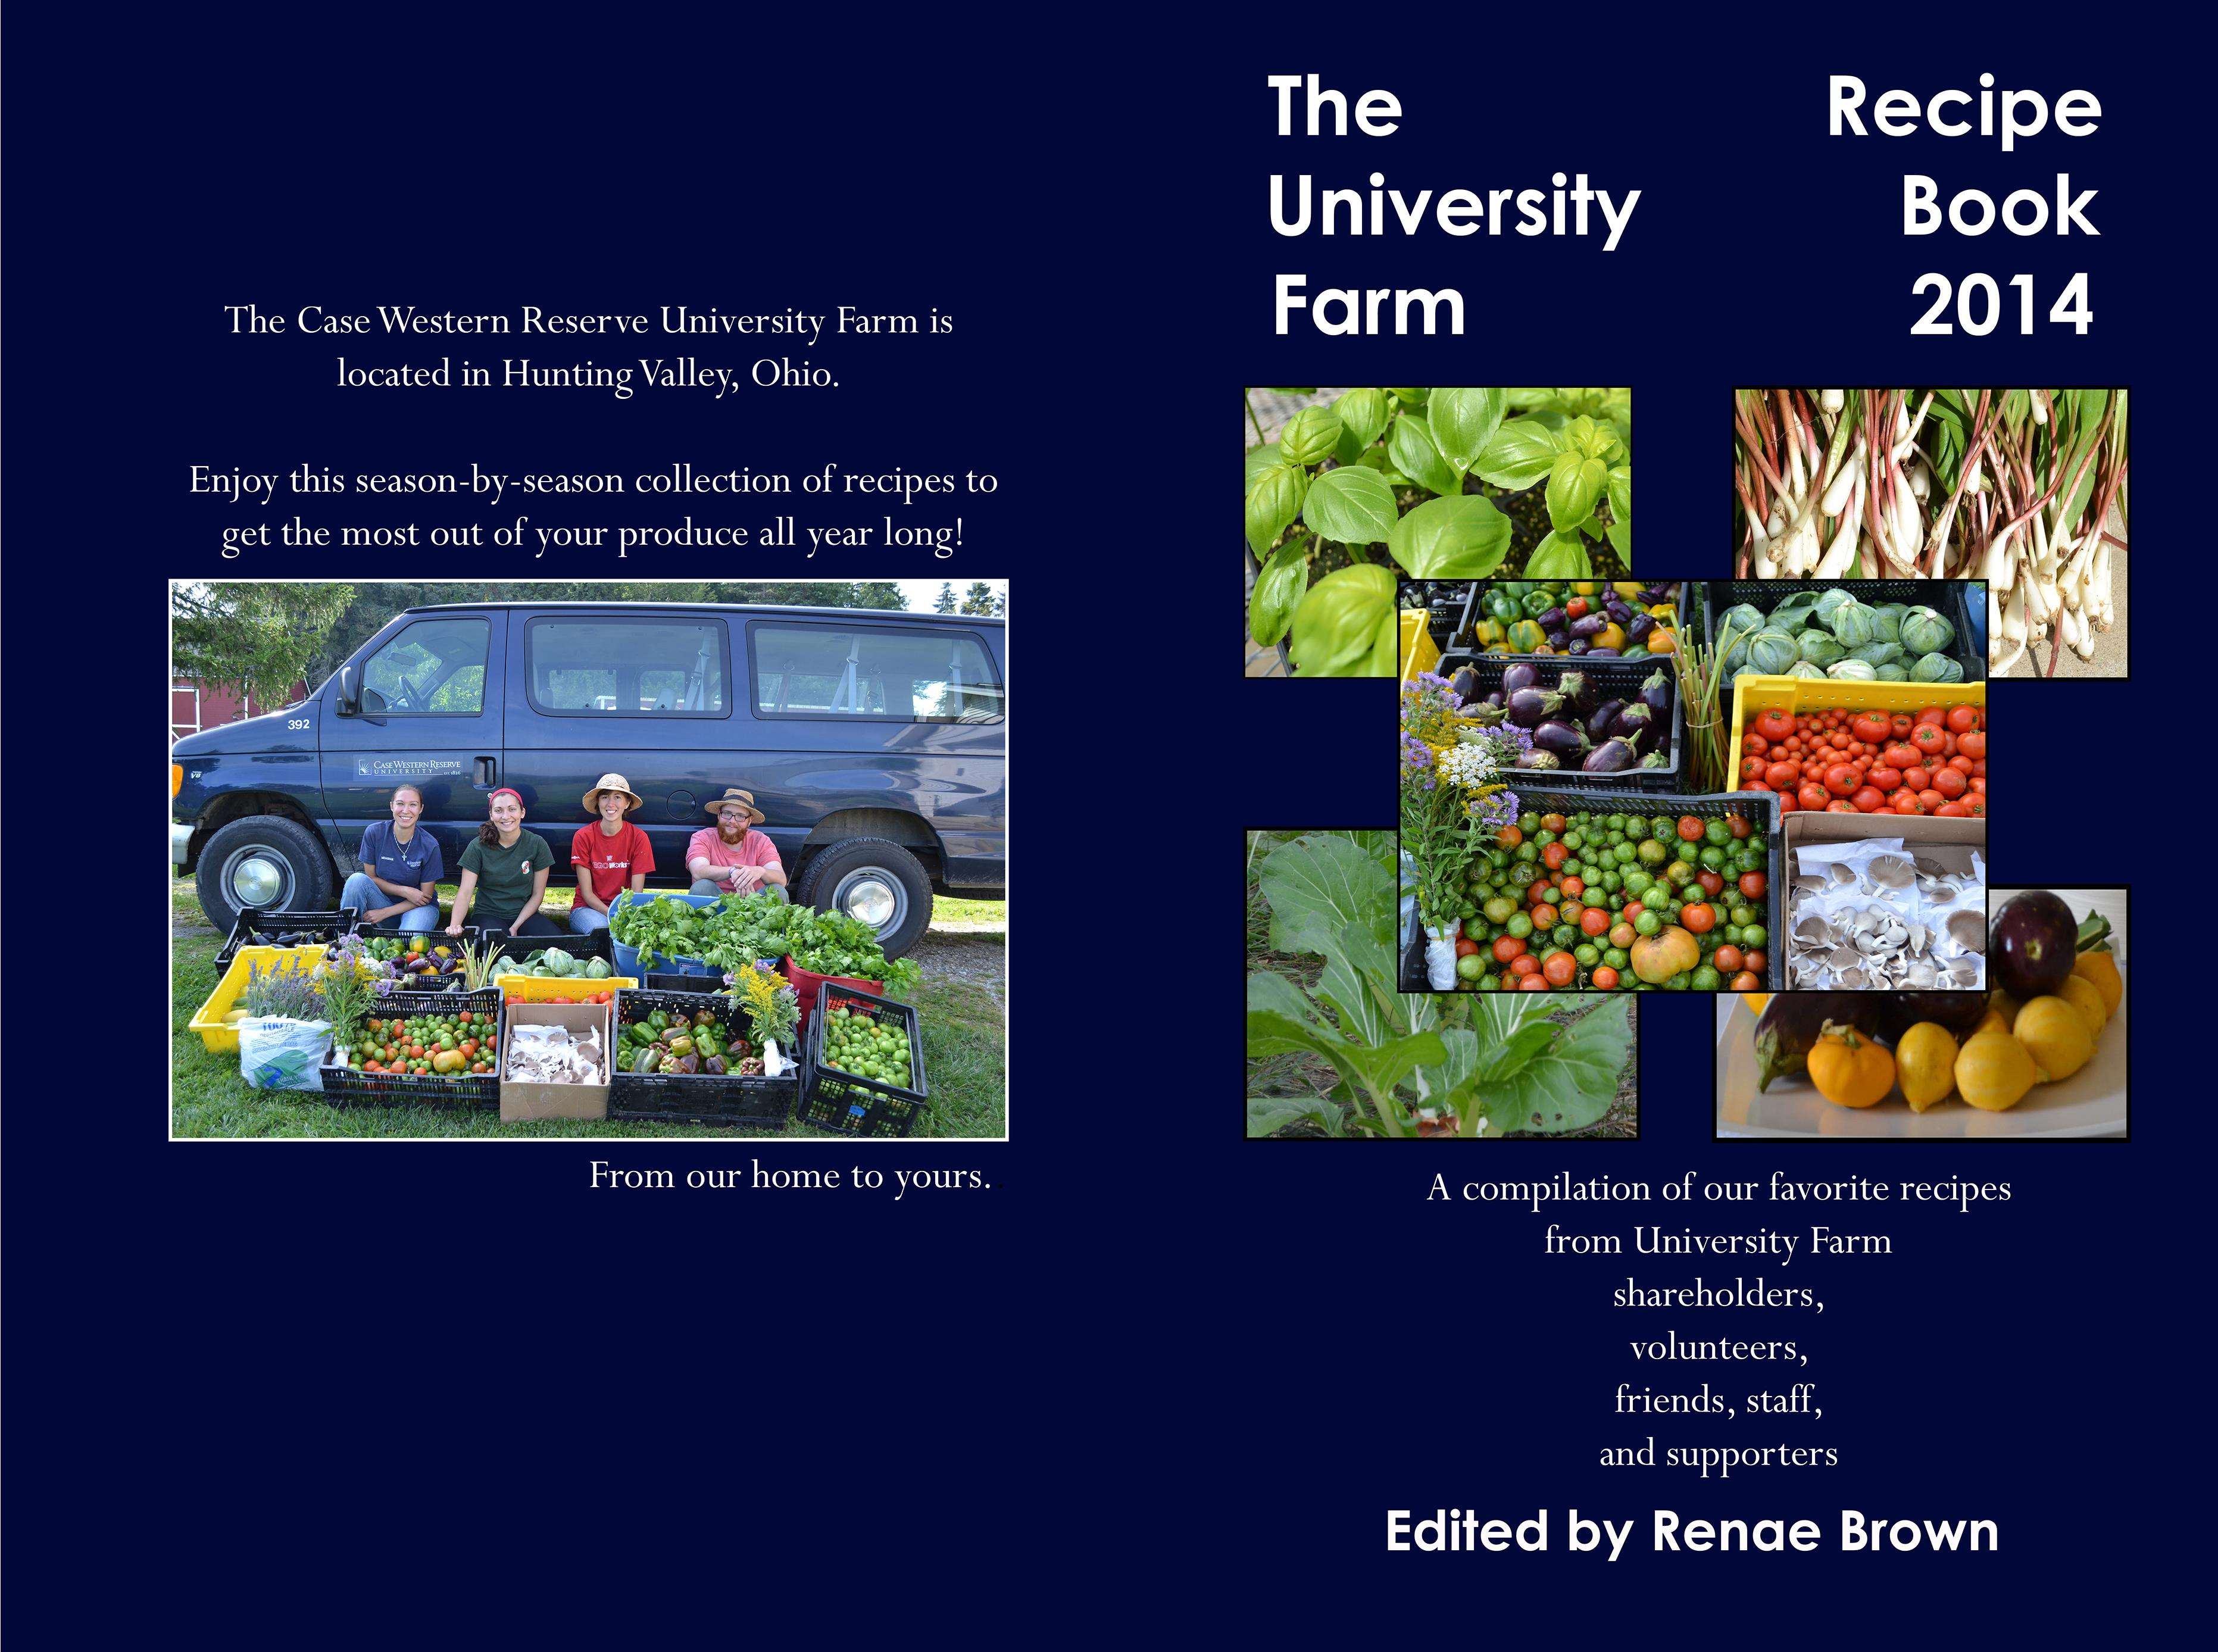 CWRU Farm Recipe Book 2014 cover image